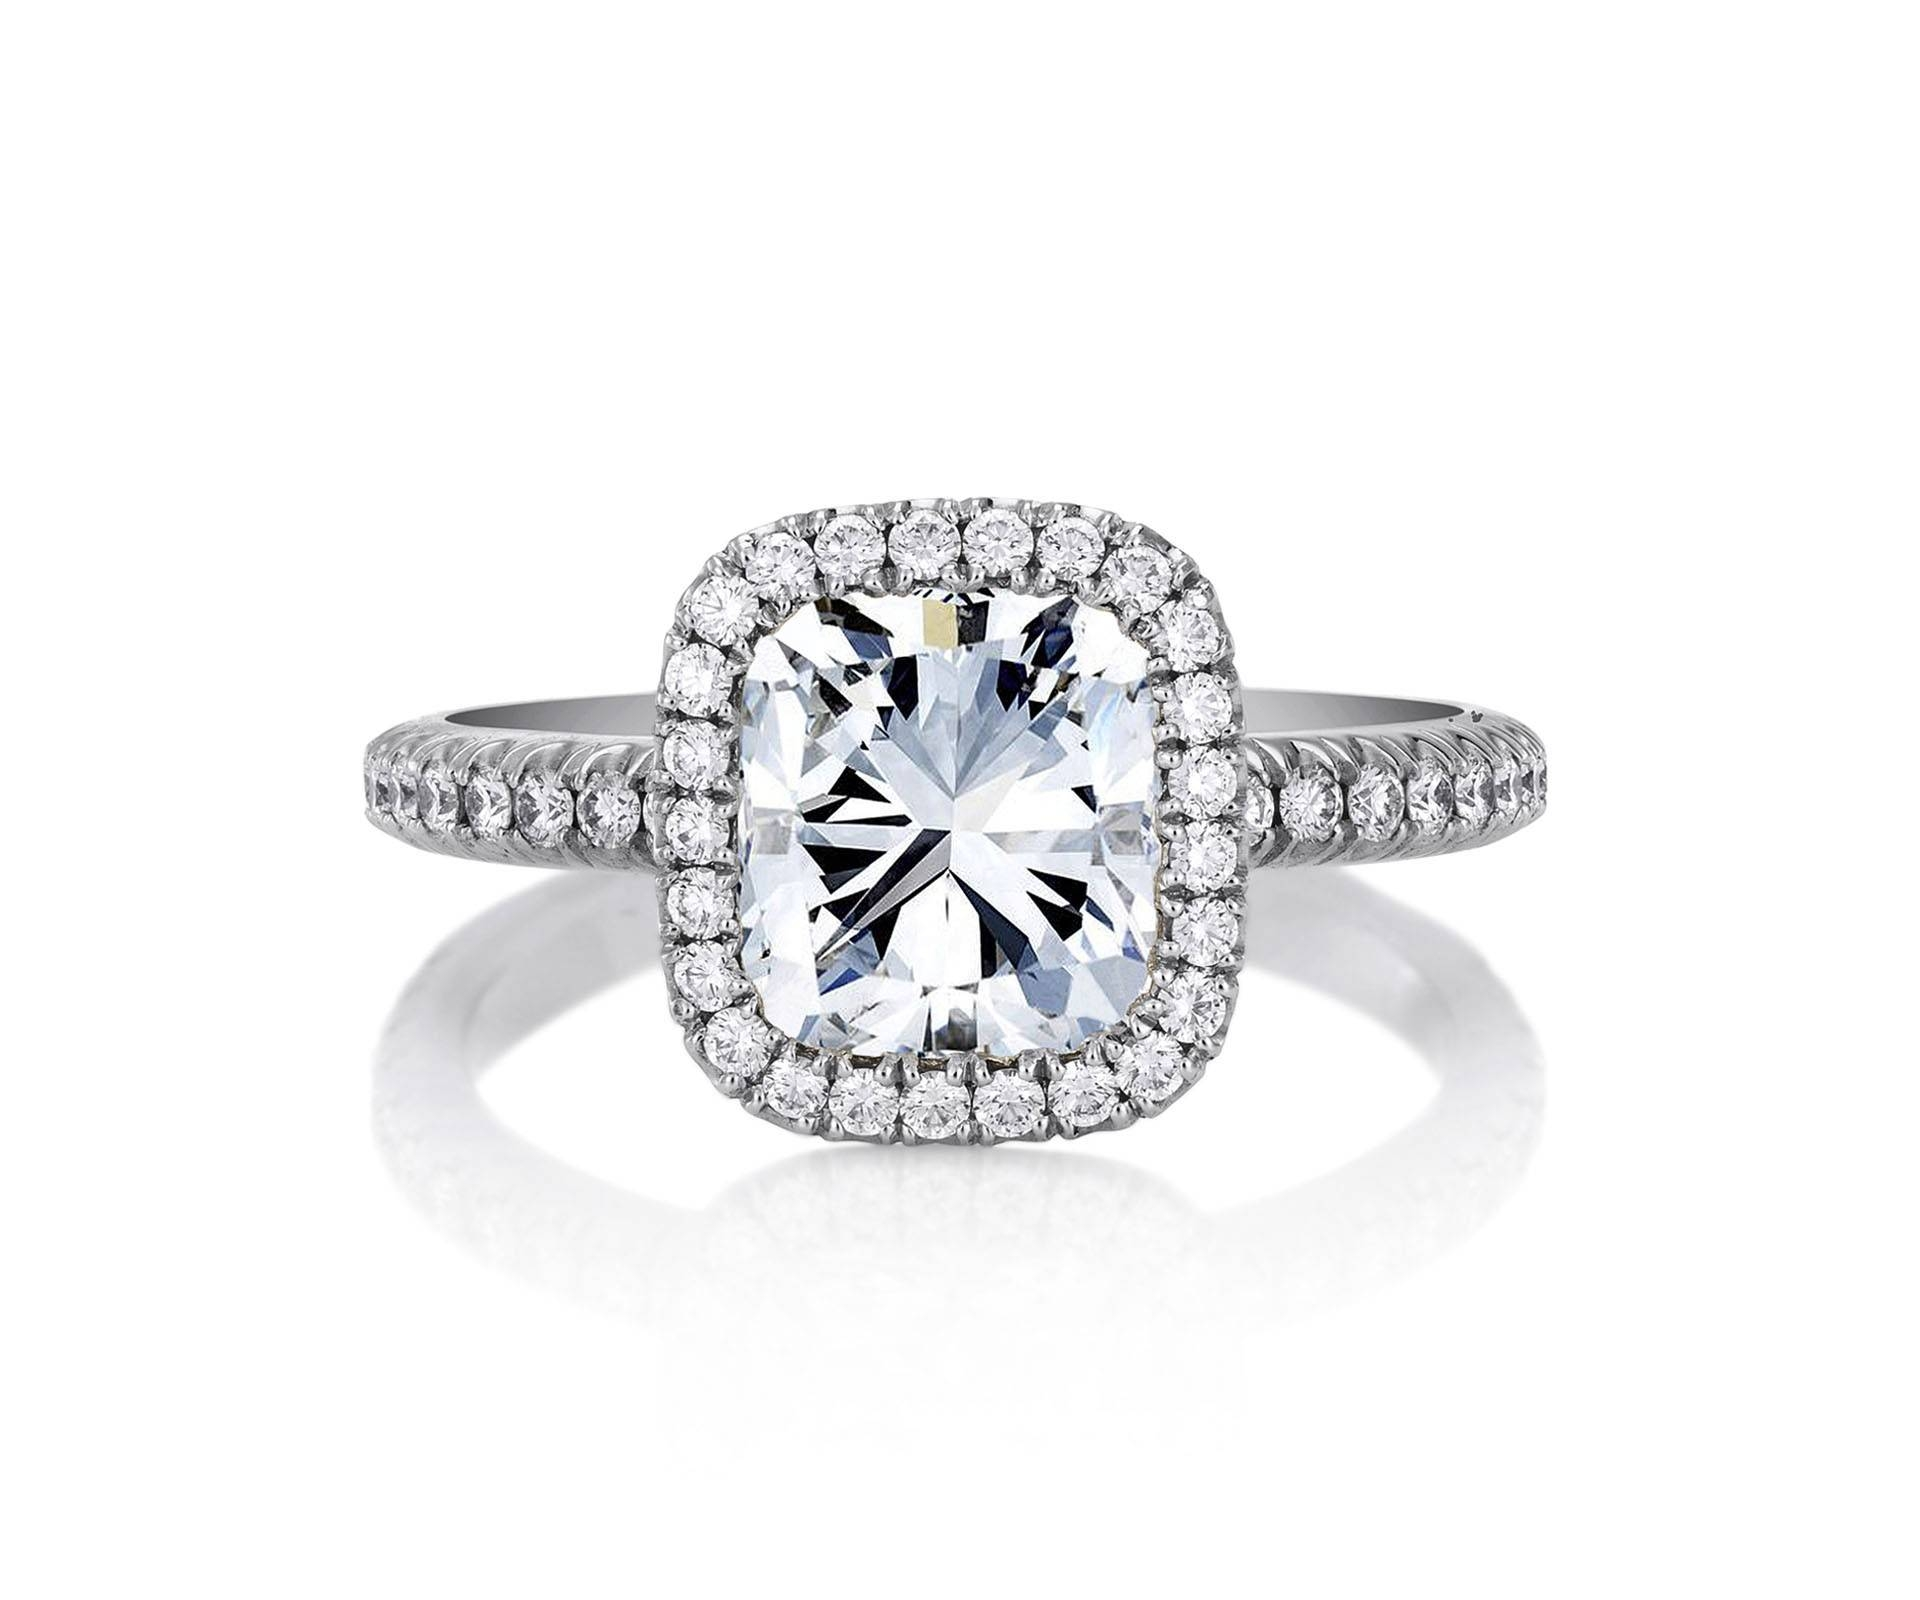 De Beers Aura Cushion Cut Solitaire Ring J1Dd13F20P | De Beers Within Diamonds Engagement Rings (View 7 of 15)